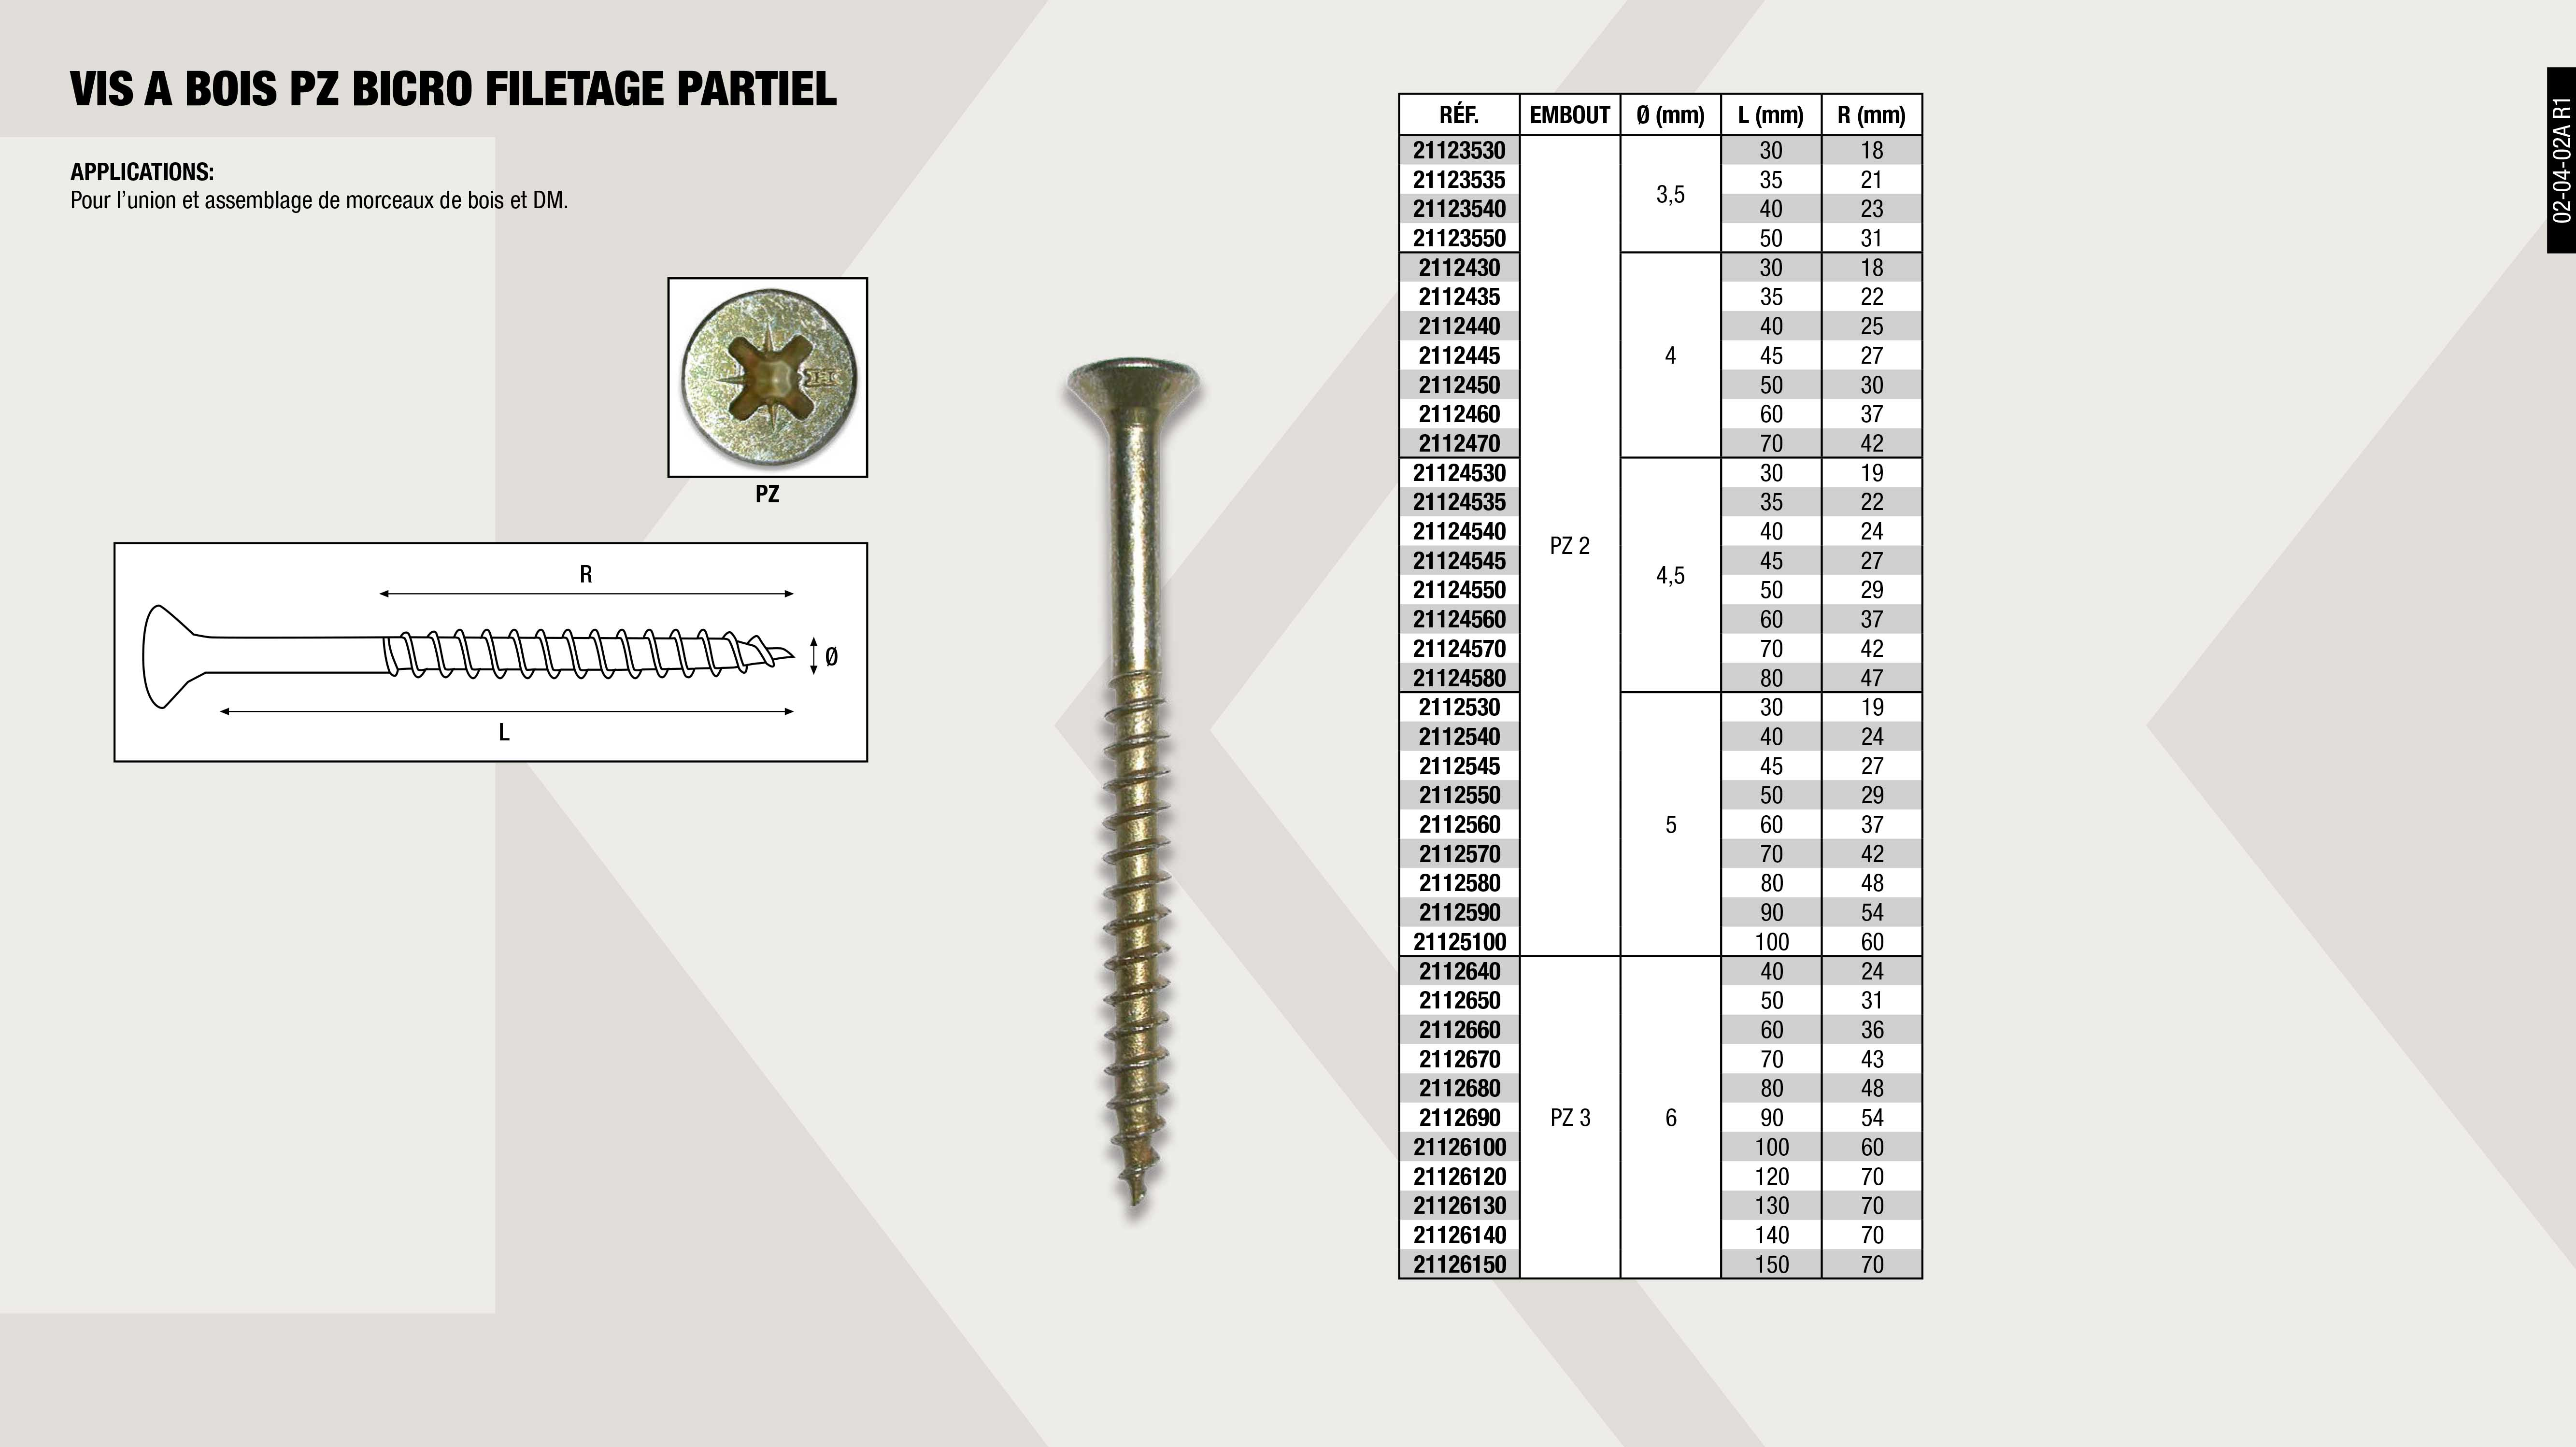 VIS AUTO FOREUSE (TETE CONIQUE) PV. 4,2X19 MM               ,  									VIS P/FORET DIN 7504P A2 PH 3,5X16 MM                       ,  									VIS AUTO FOREUSE (TETE CONIQUE) PV. 4,2X16 MM               ,  									VIS AUTO FOREUSE (TETE CONIQUE) ZN. 4,2X16 MM               ,  									VIS P/FORET DIN 7504P A2 PH 4,8X38 MM                       ,  									VIS P/FORET DIN 7504P A2 PH 4,2X19 MM                       ,  									VIS AUTO FOREUSE (TETE CONIQUE) ZN. 4,2X13 MM               ,  									VIS AUTO FOREUSE (TETE CONIQUE) ZN. 4,2X25 MM               ,  									VIS AUTO FOREUSE (TETE CONIQUE) ZN. 4,8X25MM                ,  									VIS AUTO FOREUSE (TETE CONIQUE) ZN. 3,5X13 MM               ,  									VIS AUTO FOREUSE (TETE CONIQUE) ZN. 4,2X19 MM               ,  									VIS AUTO FOREUSE (TETE CONIQUE) ZN. 4,8X16 MM               ,  									VIS AUTO FOREUSE (TETE CONIQUE) ZN. 4,2X32 MM               ,  									VIS AUTO FOREUSE (TETE CONIQUE) ZN. 3,5X16 MM               ,  									VIS AUTO-FOREUSE (TETE CONIQUE) ZN. 4,8X50MM                ,  									VIS AUTO FOREUSE (TETE CONIQUE) ZN. 4,8X32MM                ,  									VIS AUTO FOREUSE (TETE CONIQUE) PV. 3,5X19 MM               ,  									VIS AUTO FOREUSE (TETE CONIQUE) ZN. 3,5X25 MM               ,  									VIS AUTO-FOREUSE (TETE CONIQUE) ZN. 4,8X38MM                ,  									VIS P/FORET DIN 7504P A2 PH 3,5X19 MM                       ,  									VIS P/FORET DIN 7504P A2 PH 3,5X25 MM                       ,  									VIS AUTO FOREUSE (TETE CONIQUE) ZN. 4,2X19 MM               ,  									VIS P/FORET DIN 7504P A2 PH 3,5X13 MM                       ,  									VIS P/FORET DIN 7504P A2 PH 4,2X16 MM                       ,  									VIS P/FORET DIN 7504P A2 PH 4,8X50 MM                       ,  									VIS AUTO FOREUSE TETE FRIASEE ZN. 3,9X25                    ,  									VIS AUTO FOREUSE (TETE CONIQUE) PV. 3,5X13 MM               ,  									VIS P/FORET DIN 7504P A2 PH 4,2X13 MM                       ,  									VIS P/FORET DIN 7504P A2 PH 4,2X25 MM                       ,  									VIS P/FORET DIN 7504P A2 PH 4,8X25 MM                       ,  									VIS AUTO FOREUSE (TETE CONIQUE) PV. 3,5X16 MM               ,  									VIS AUTO FOREUSE (TETE CONIQUE) ZN. 3,5X19 MM               ,  									VIS AUTO FOREUSE (TETE CONIQUE) ZN. 4,8X13 MM               ,  									VIS P/FORET DIN 7504P A2 PH 4,2X32 MM                       ,  									VIS P/FORET DIN 7504P A2 PH 4,8X32 MM                       ,  									VIS AUTO FOREUSE TETE FRIASEE ZN. 3,9X32                    ,